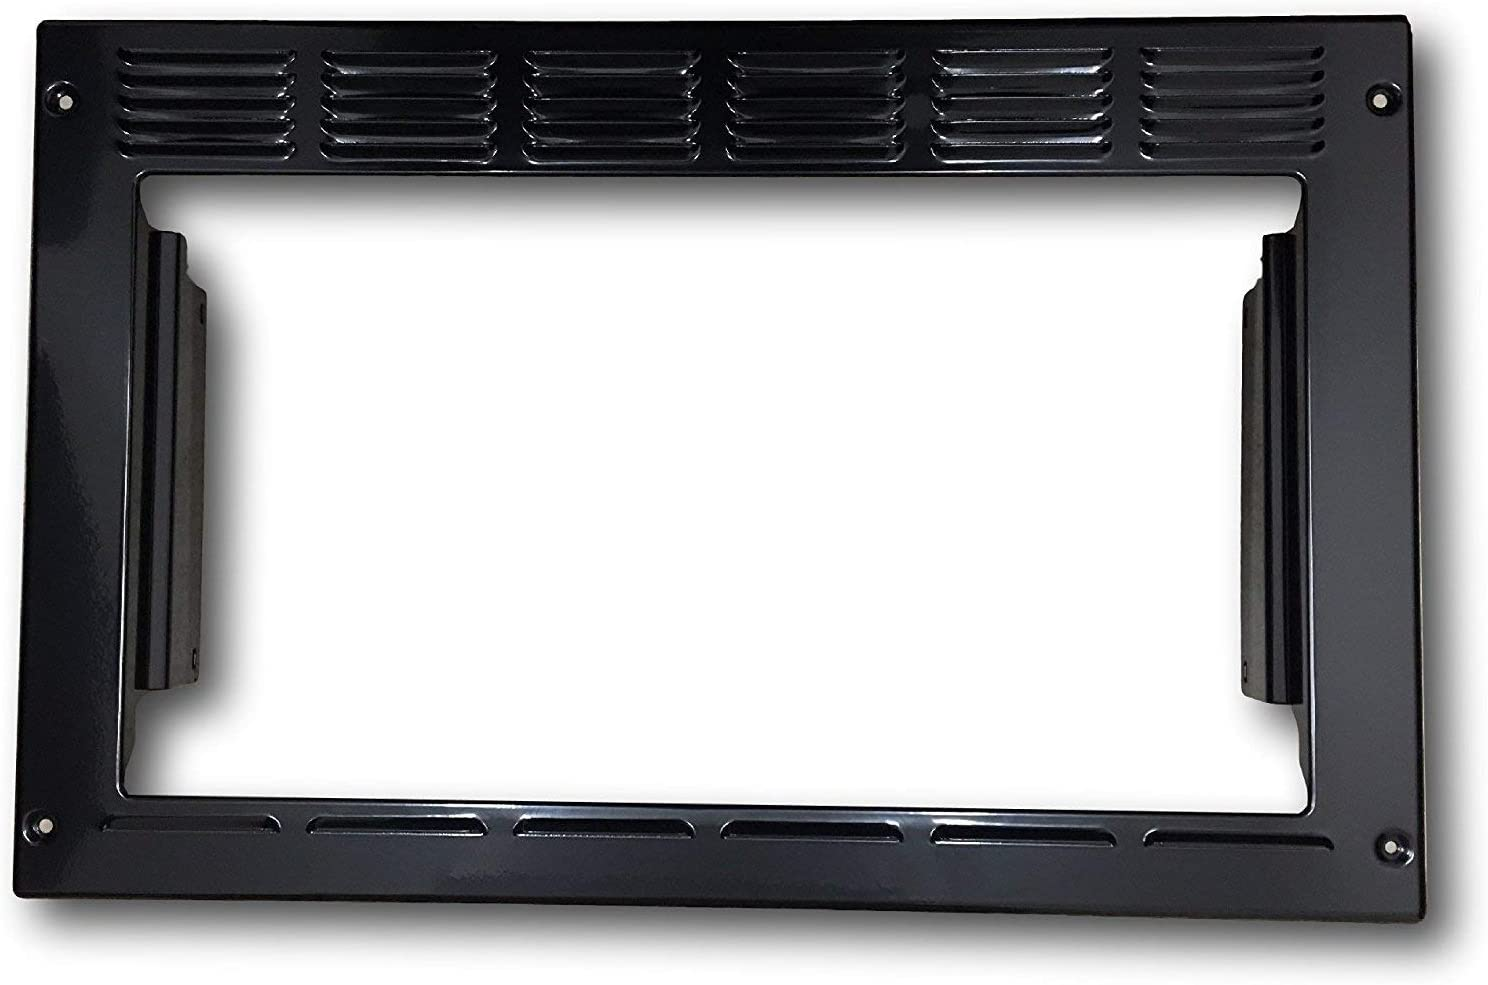 """Advent PMWTRIM Trim Kit, Black For use with MW900B and MW912B Built-in Microwave Ovens, Made of Steel, Outside Dimensions: 23.25""""W x 15""""H x 2.75""""D, Inside Opening Dimensions: 19""""W x 10.5""""H (Renewed)"""